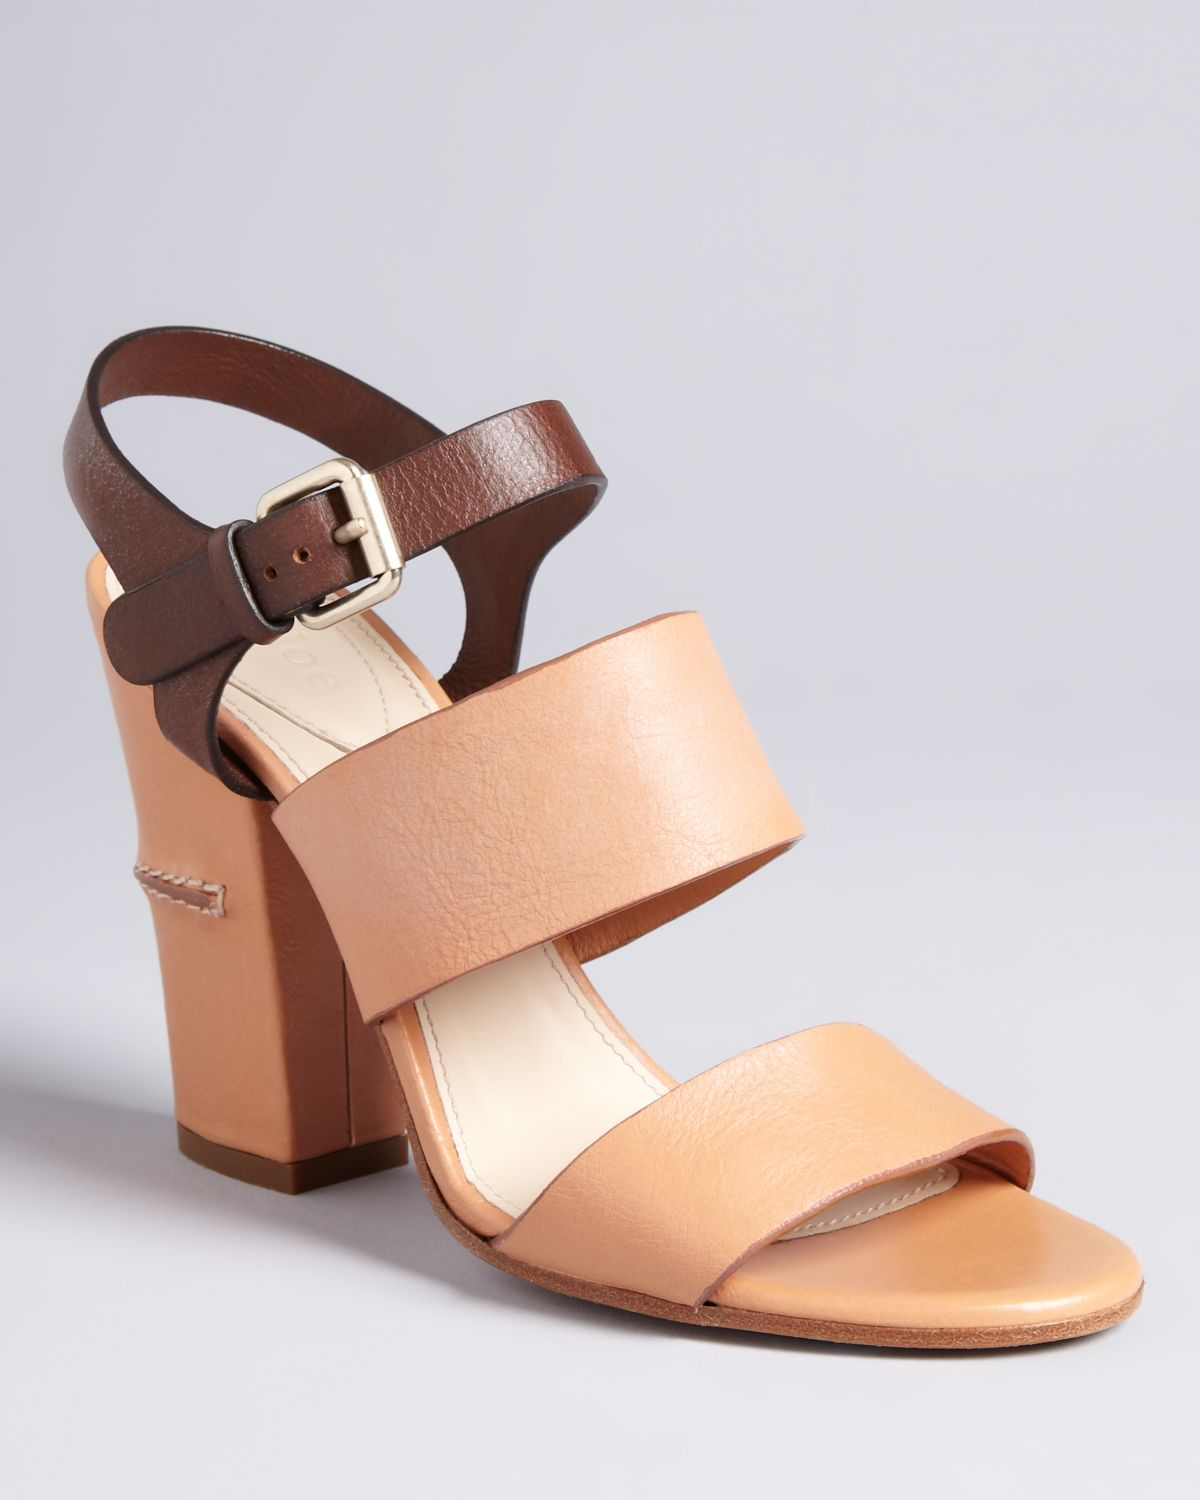 b81059b1b6f Chloé Cork Block Sandals Two Tone High Heel in Natural - Lyst